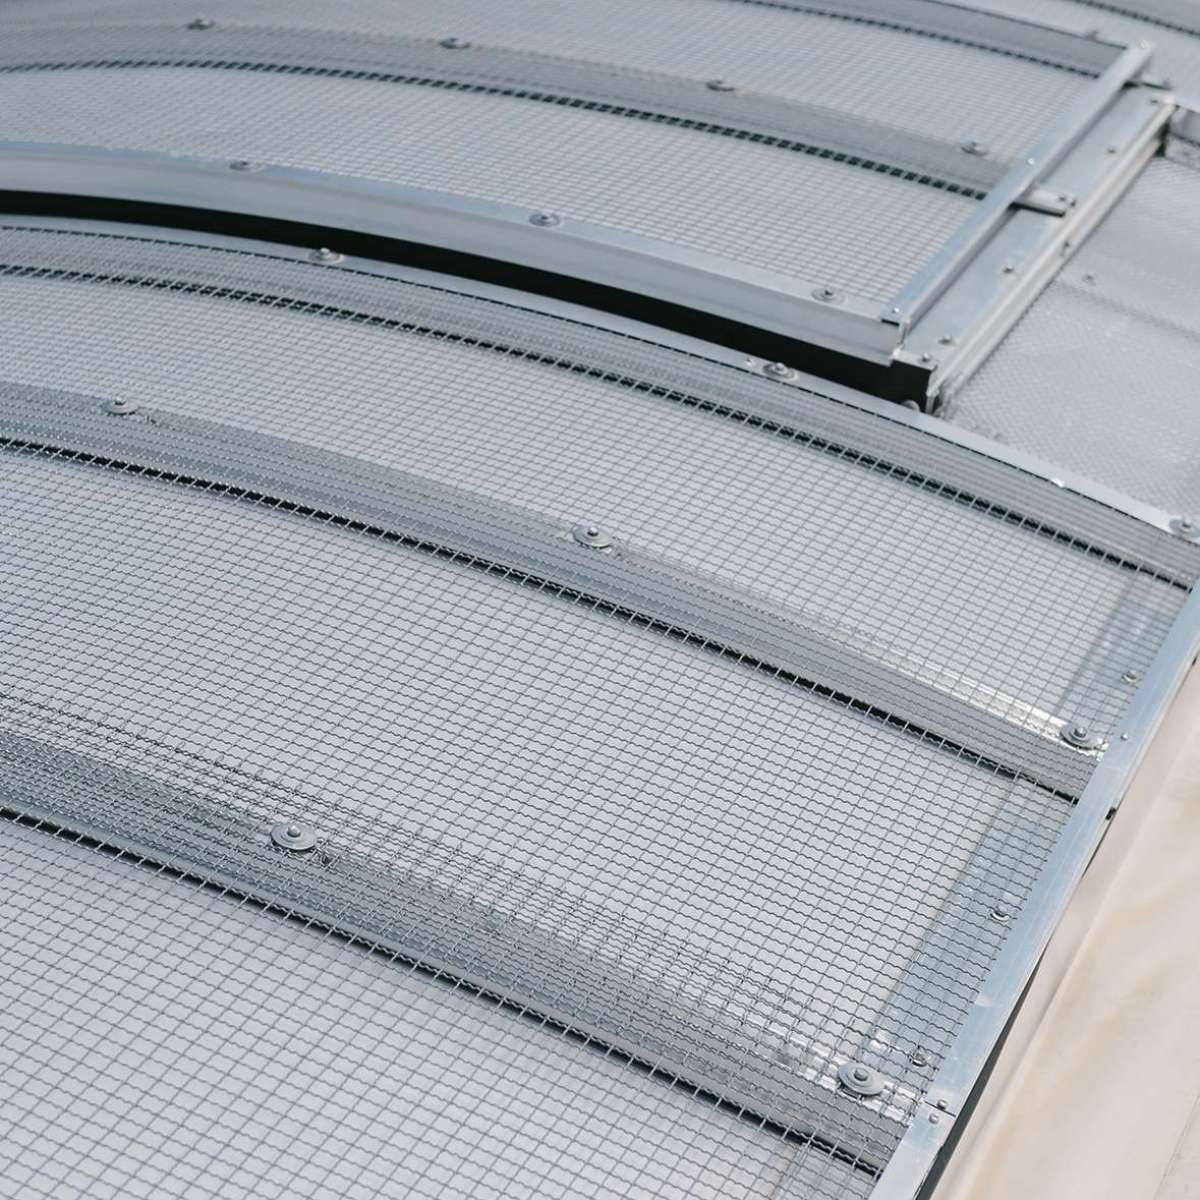 HECO-Schrauben GmbH & Co. KG (Screw manufacturer) | Schramberg • Topline ELS 1.8 continuous rooflight, 4 continuous rooflights 15 m x 2.50 m, hail protection wave grid WG, 4 multi-purpose ventilators, 8 SHEV flaps and 22 PC SHEV rooflights.